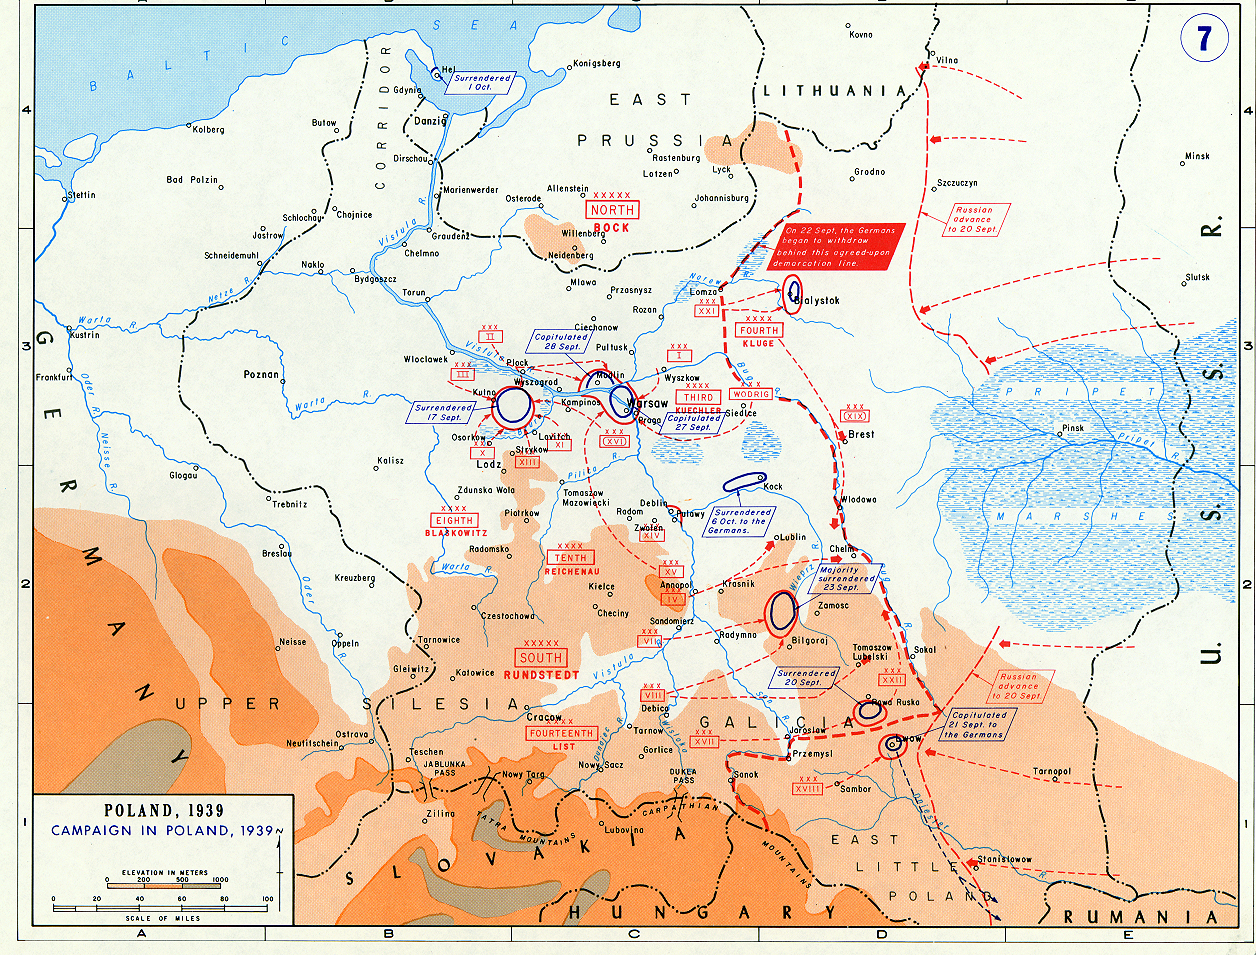 remembering germanys invasion of poland in 1939 The invasion of poland was the brink of the beginning of the second world war its started on the 1st of september, 1939 when the wehrmacht used their blitzkrieg tactics, and swiftly took over control of poland in under two months.